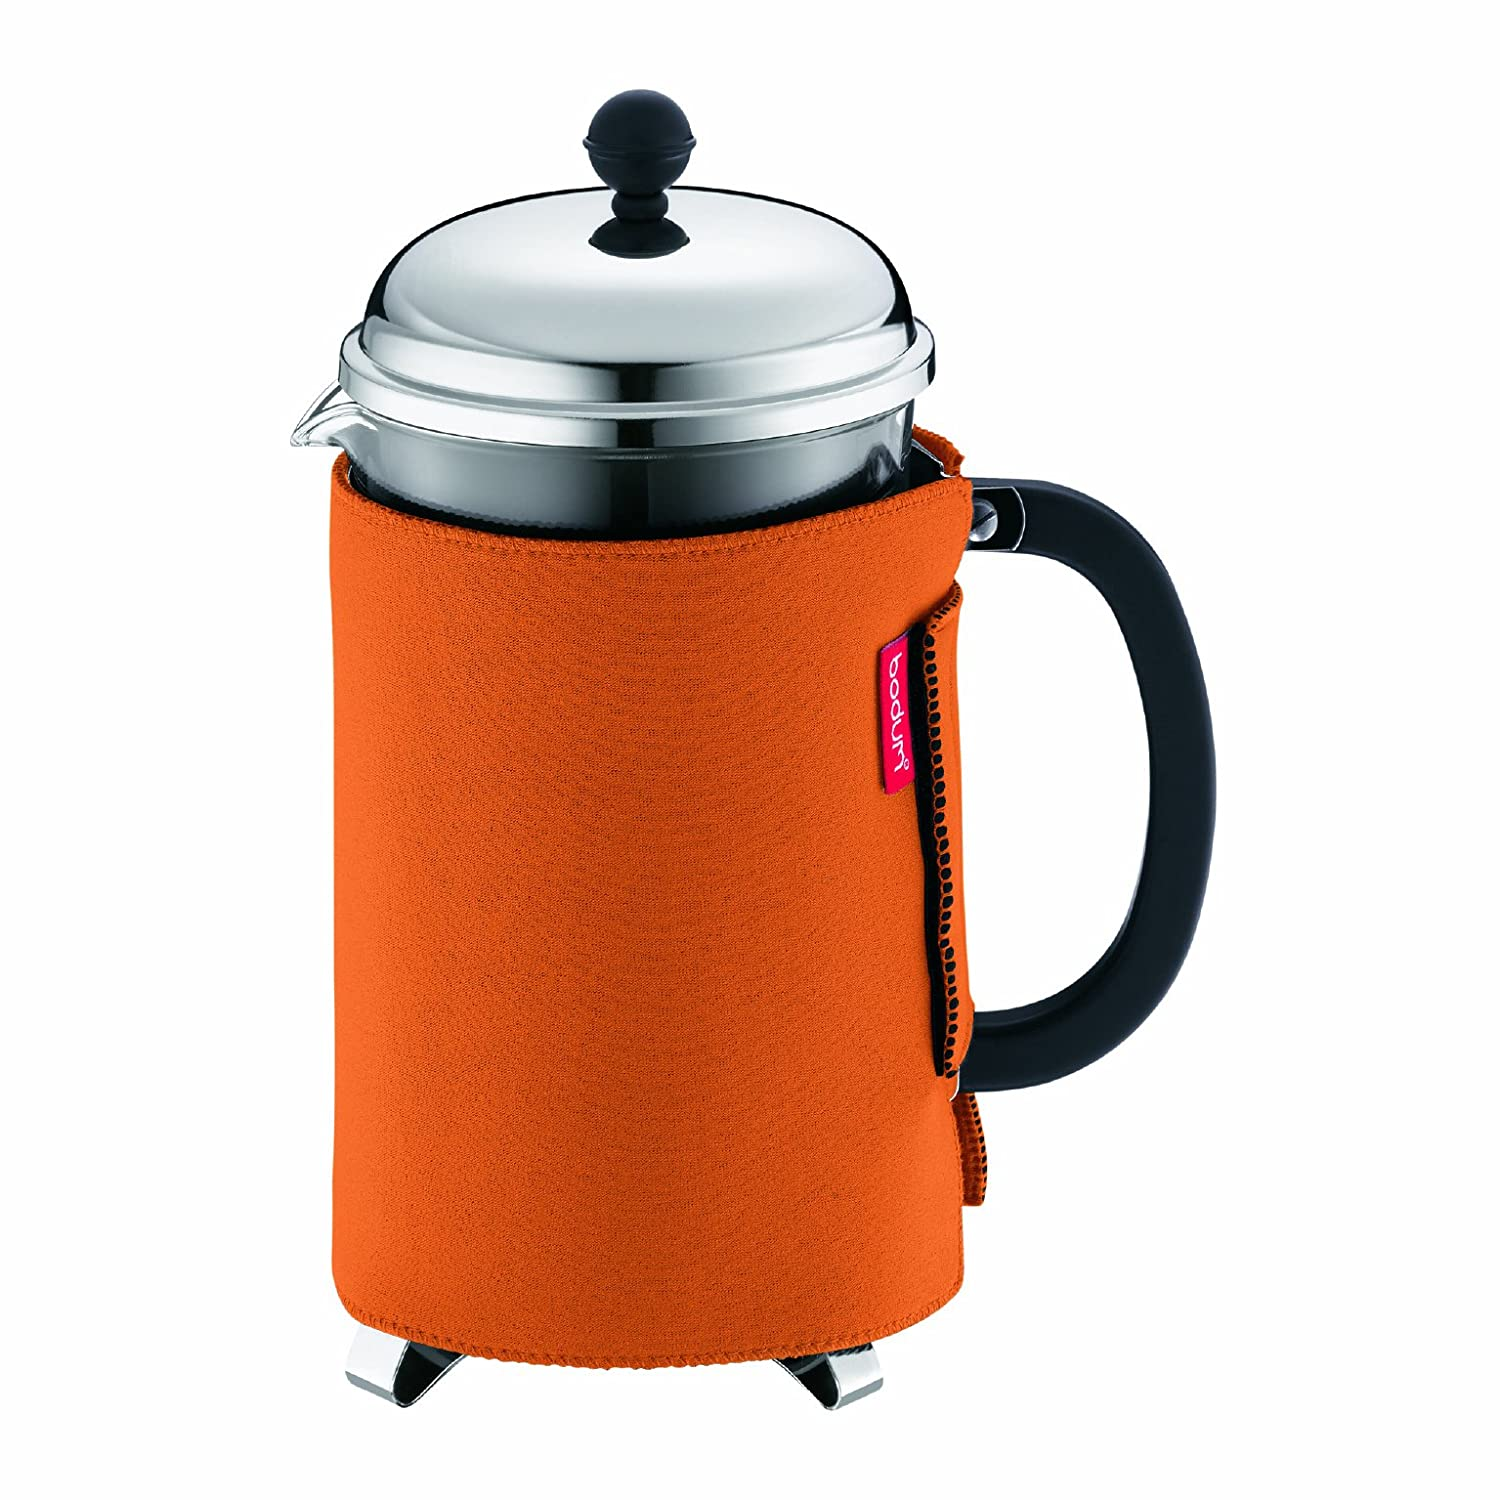 BODUM Nero 1.5 Litre 51 oz Coffee Coat for Chambord Coffee Maker, 12 Cups, Orange 10998-106